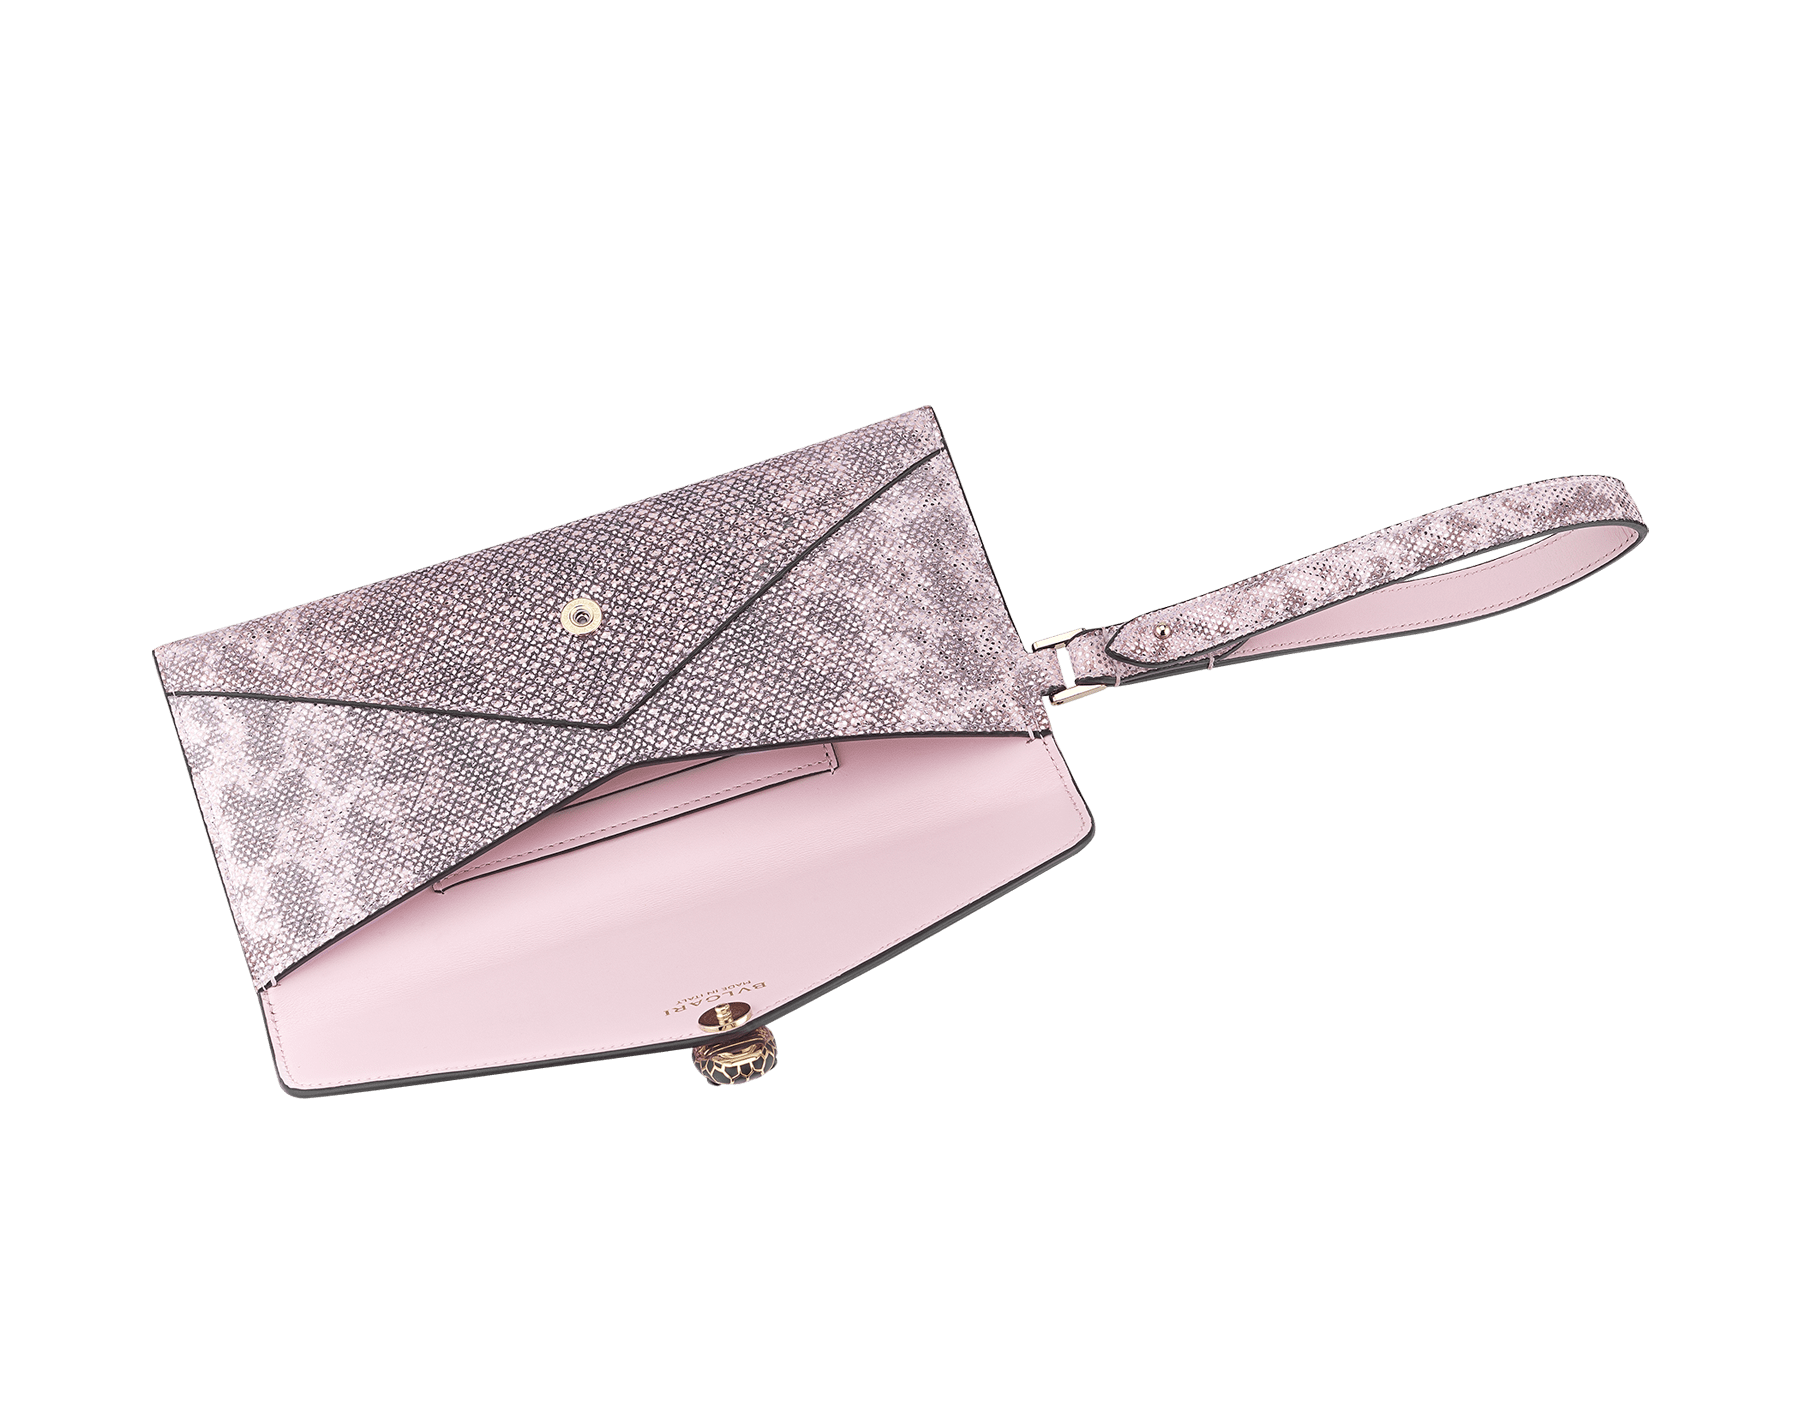 Serpenti Forever envelope case in rosa di francia metallic karung skin and rosa di francia calf leather. Iconic snakehead charm in black and rosa di francia enamel, with black onyx eyes. 289083 image 2